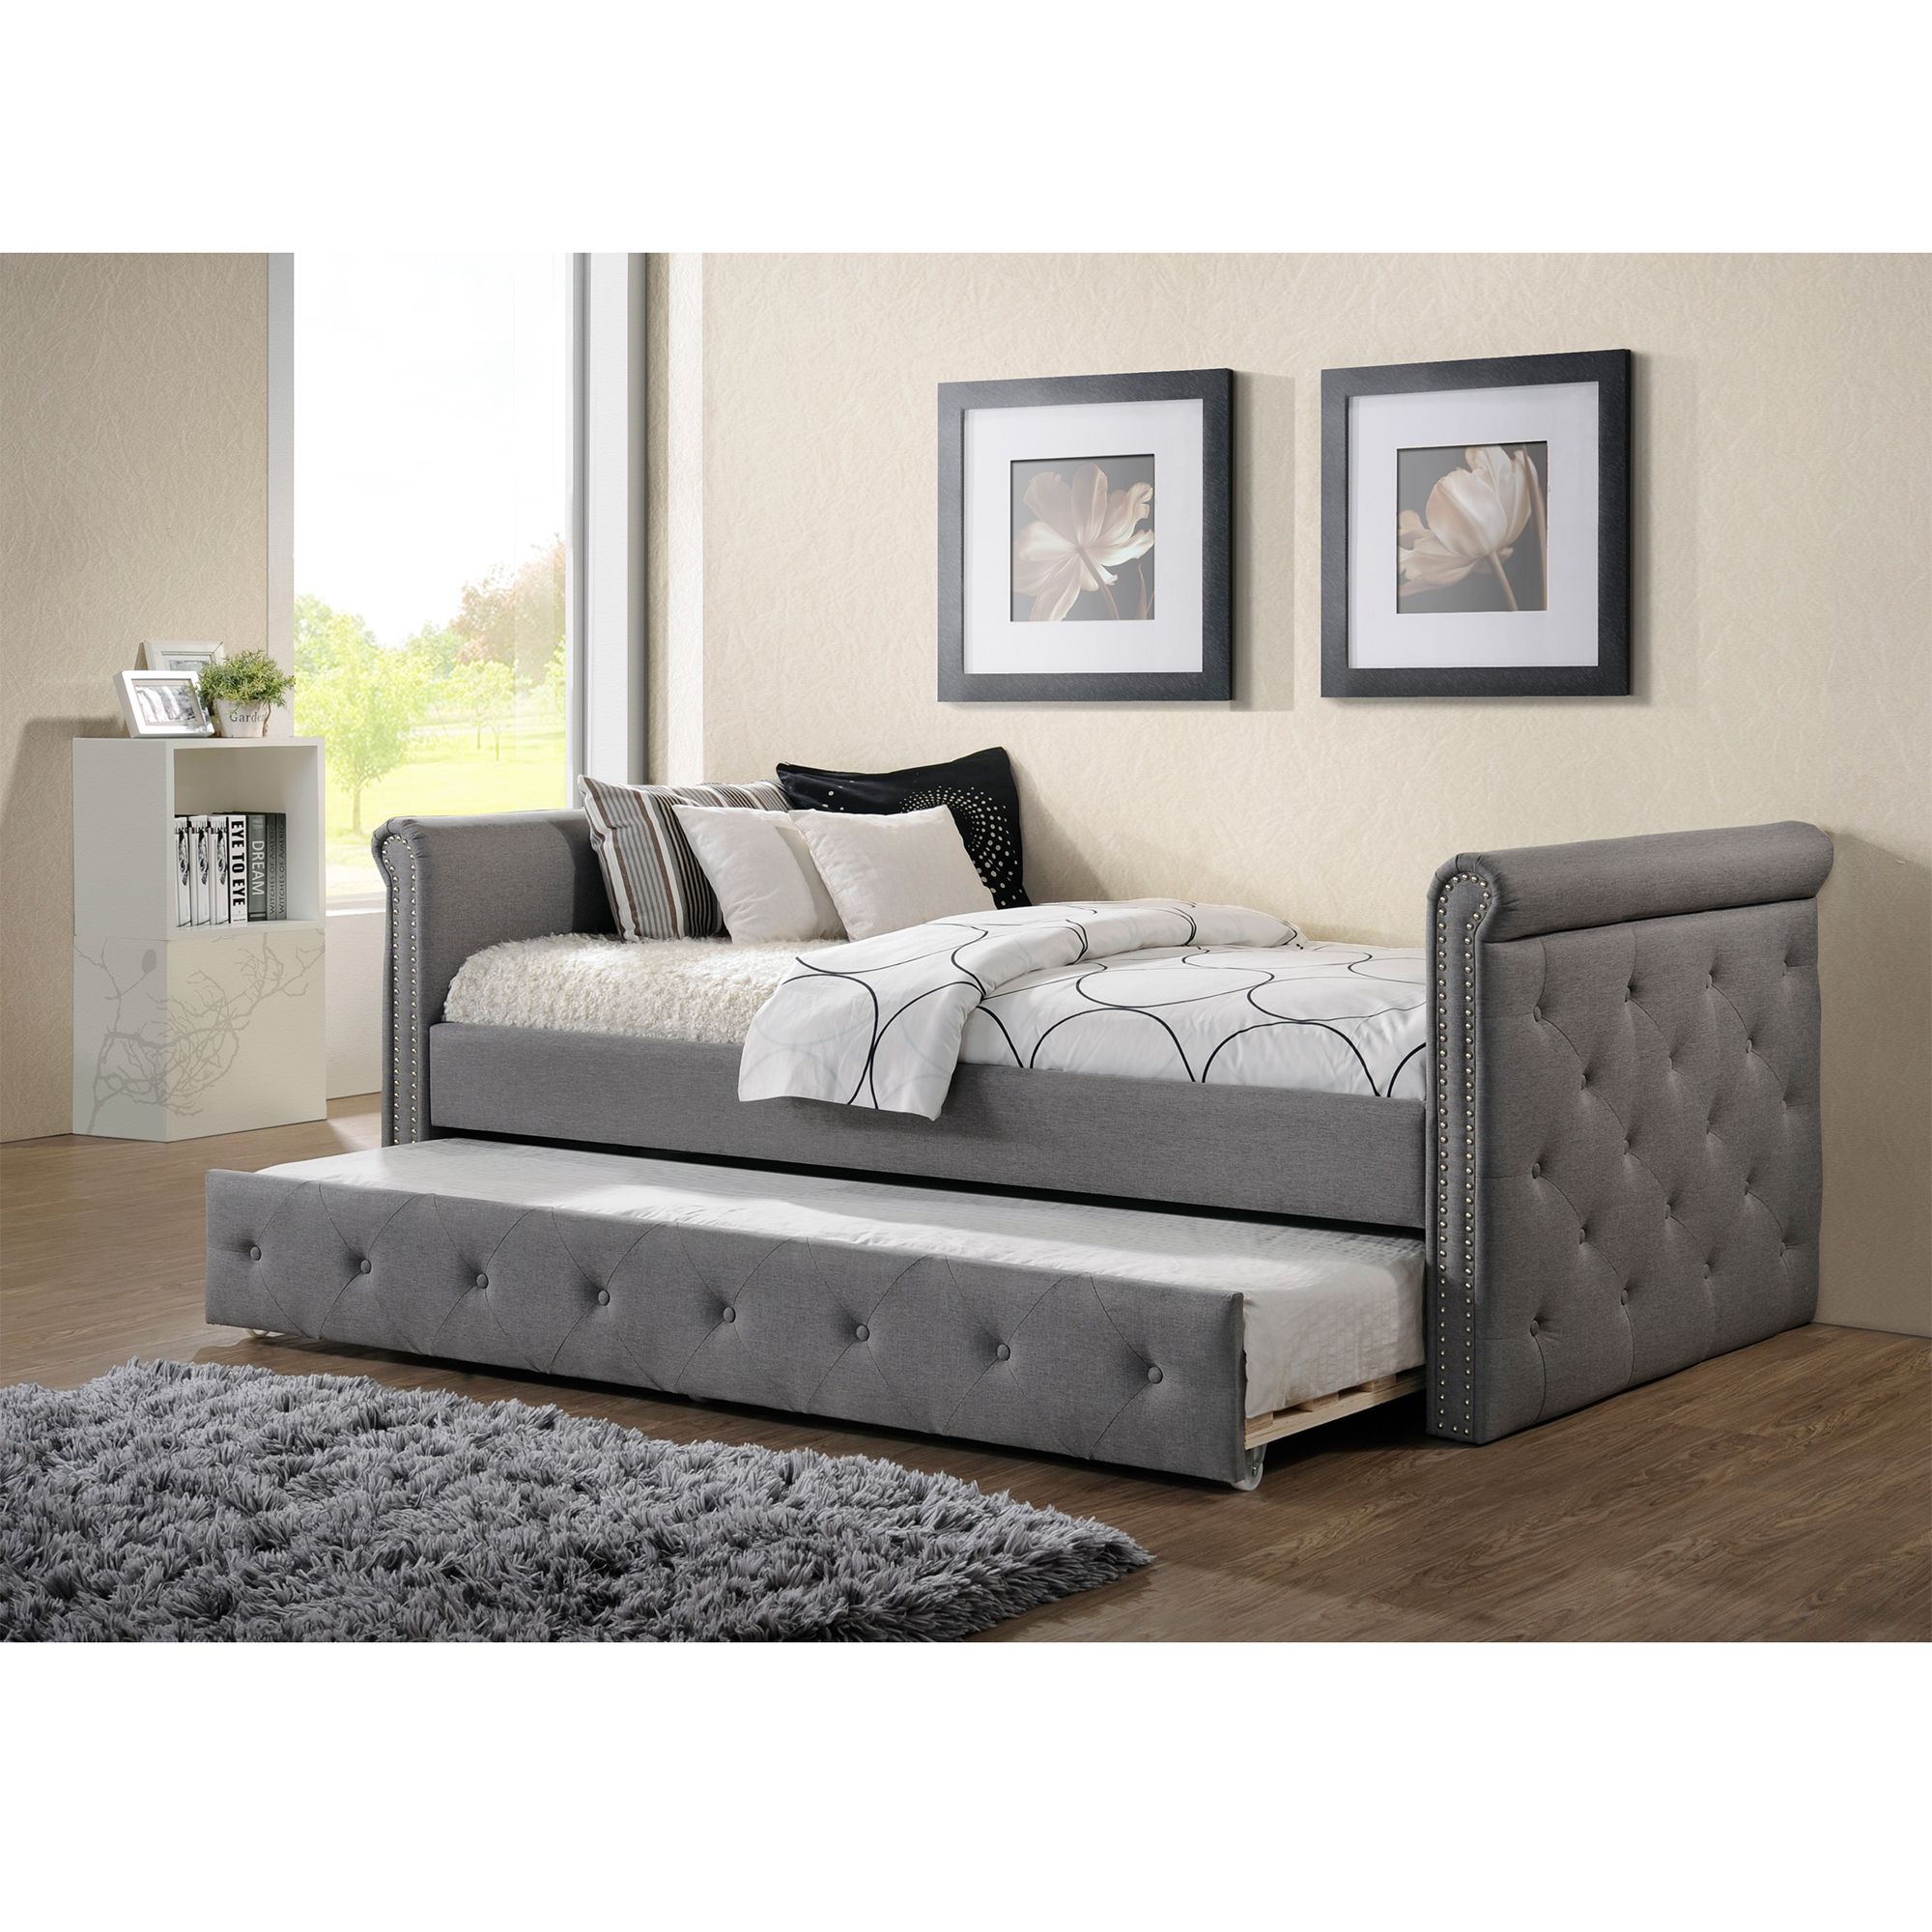 modern bed daybed ikea up twin pop queen with trundle